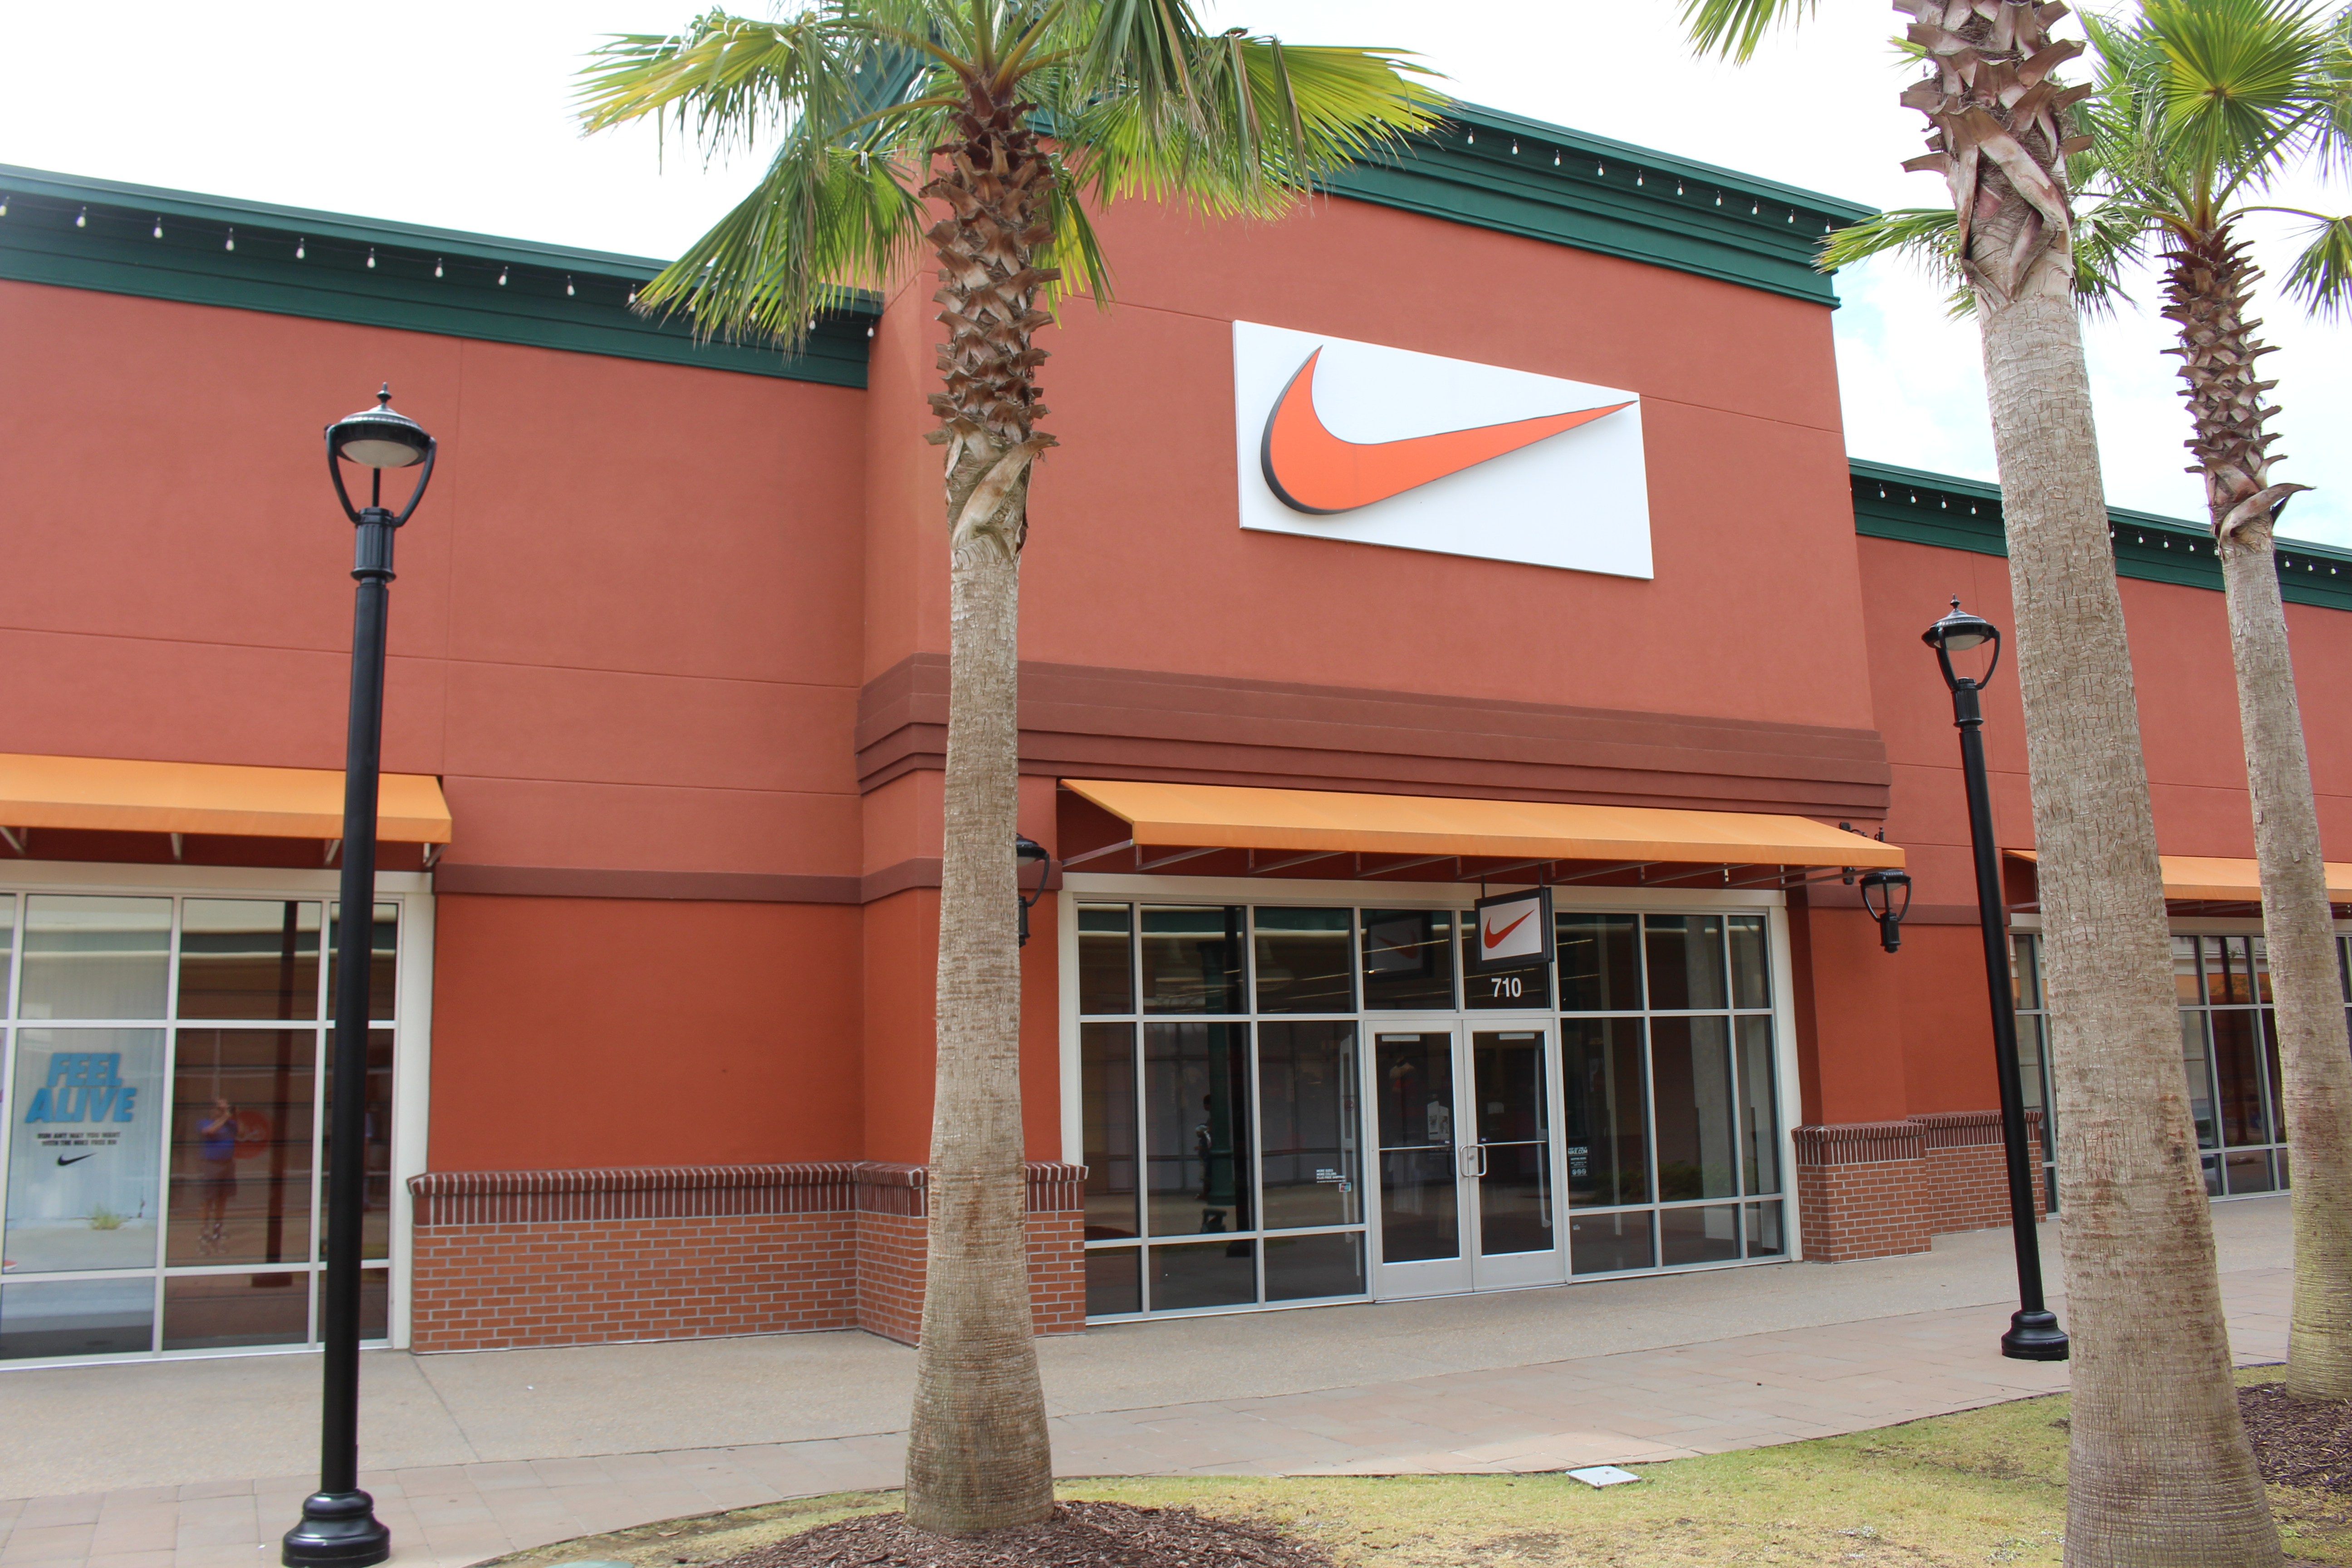 File:Nike factory stores, Tanger